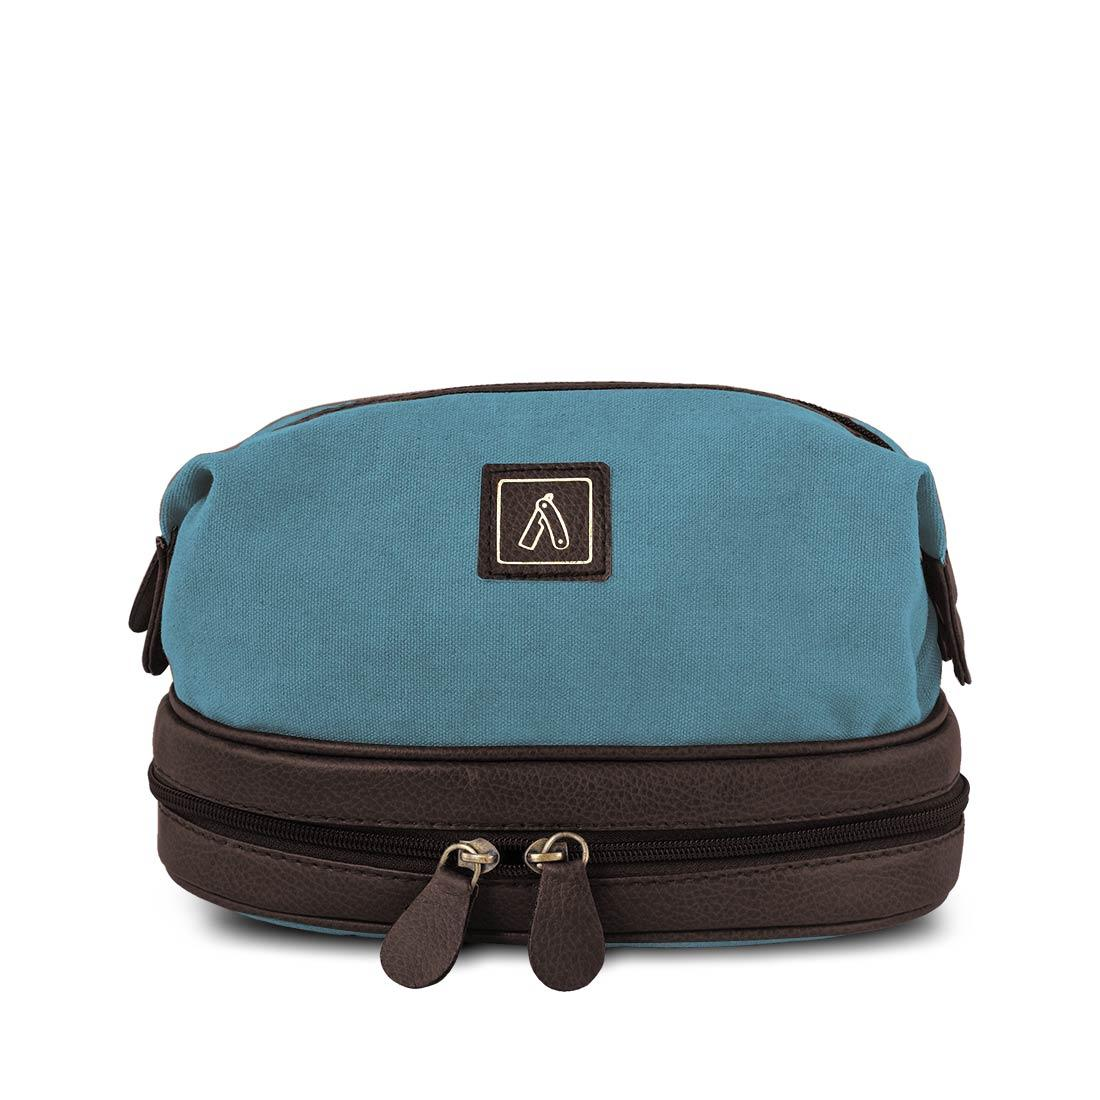 Ustraa Travel Kit - Blue - with Extendable Buttons, Easy Pull Tabs on Zippers and a Wet Compartment, Grooming Essential for Men